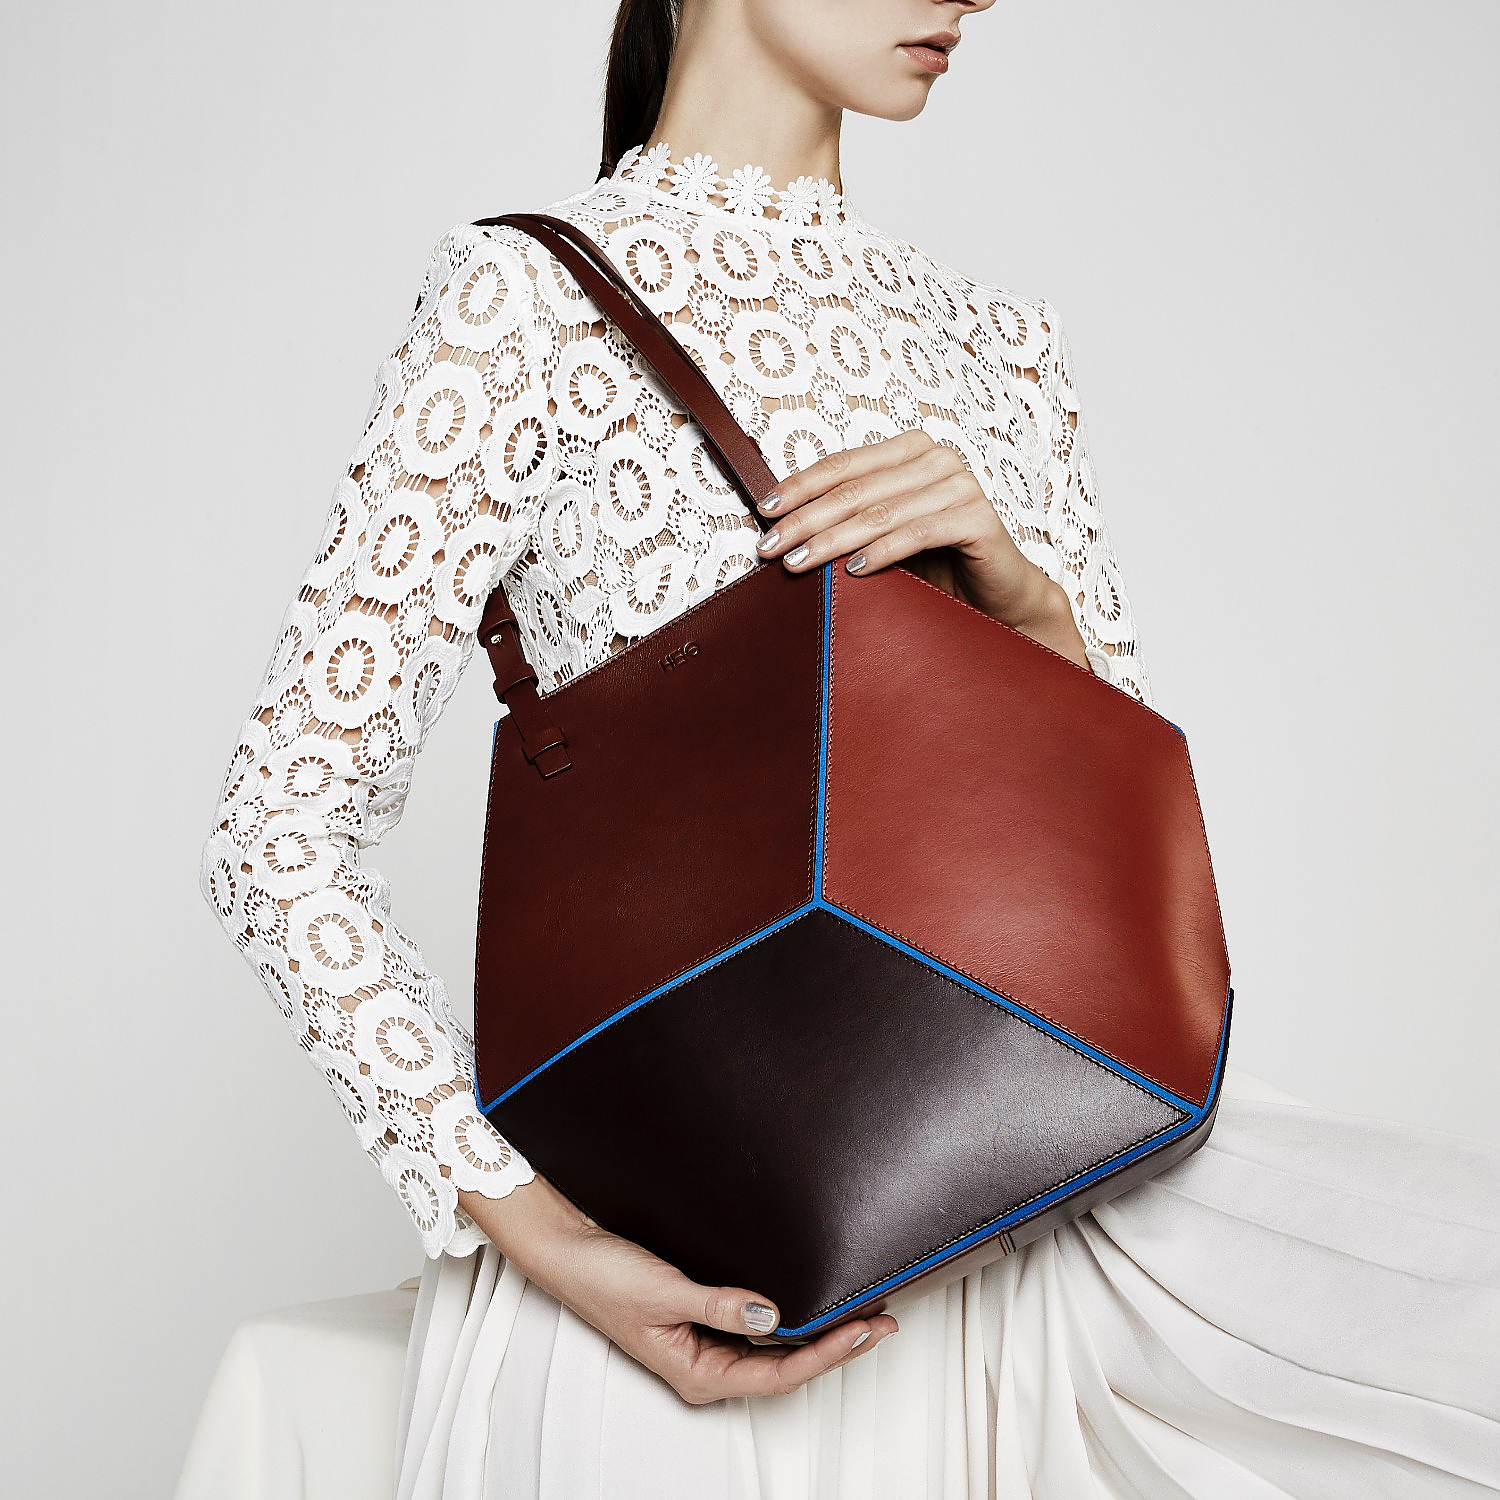 The Cube Geometric Bags by HEIO.